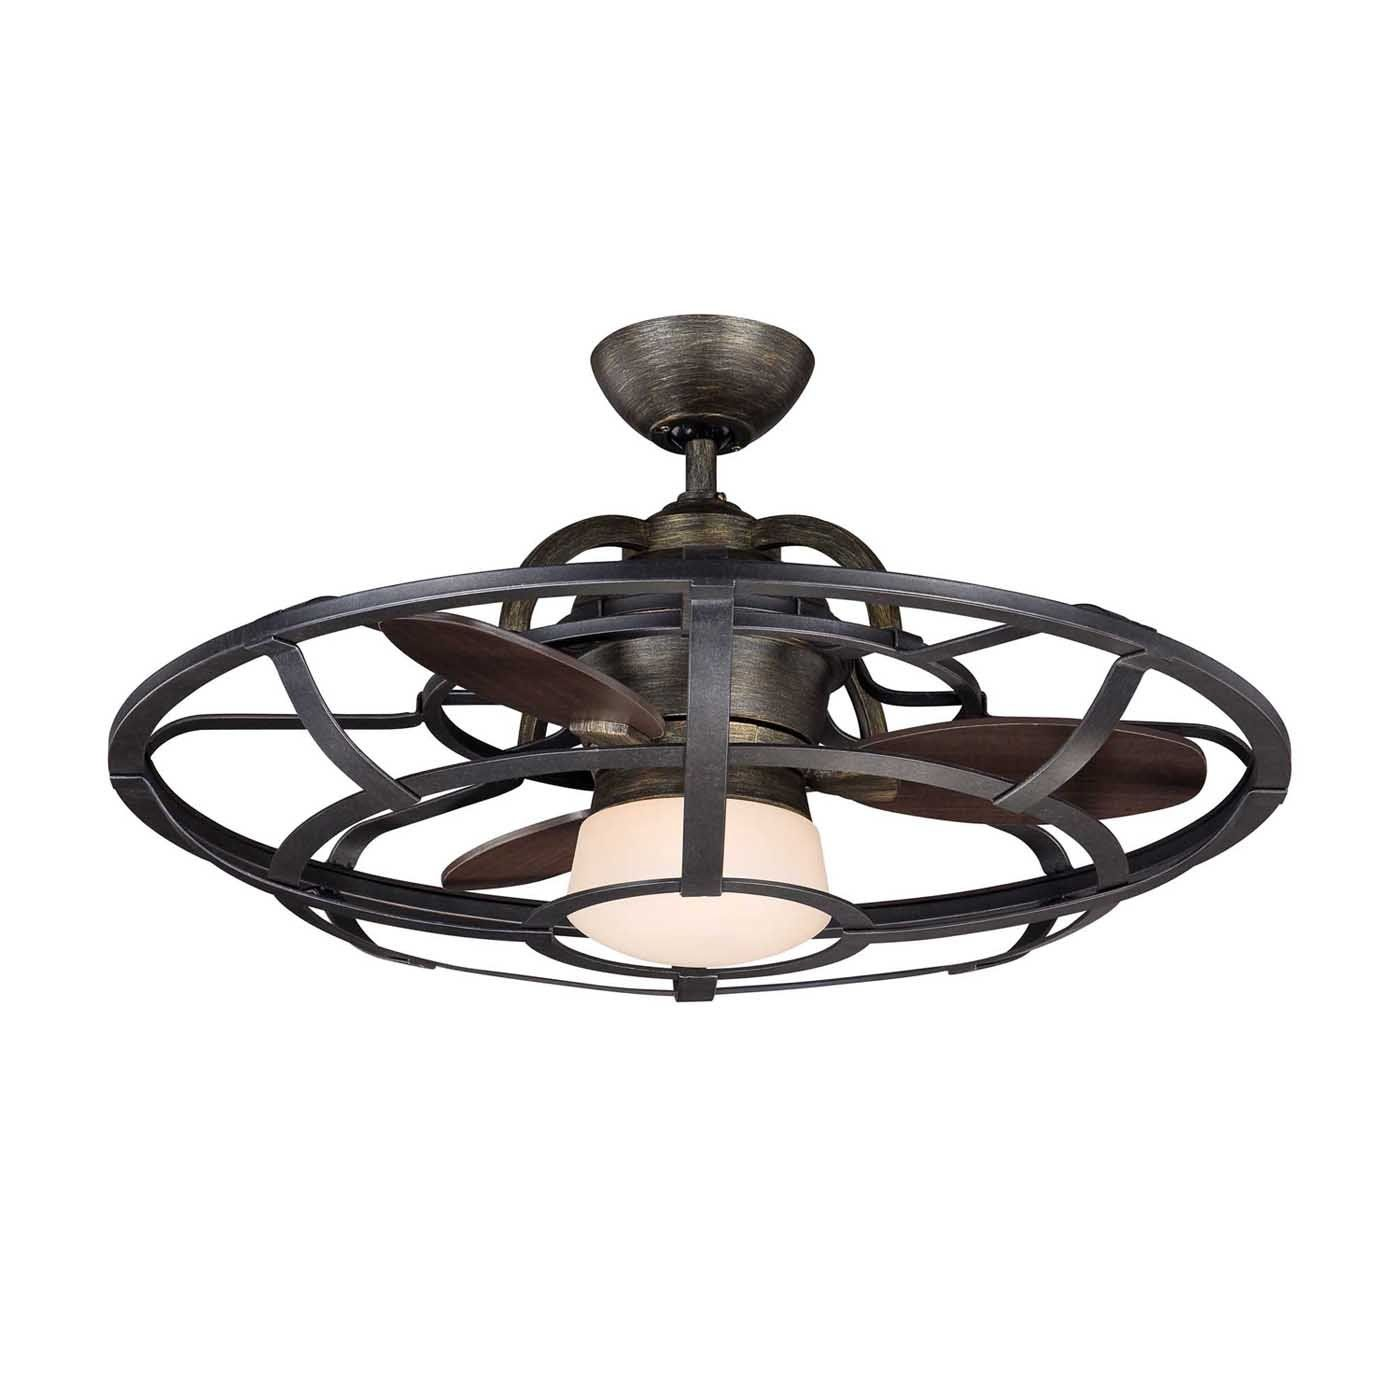 Savoy House 26 9536 FD 196 Alsace Ceiling Fan d Lier at ATG